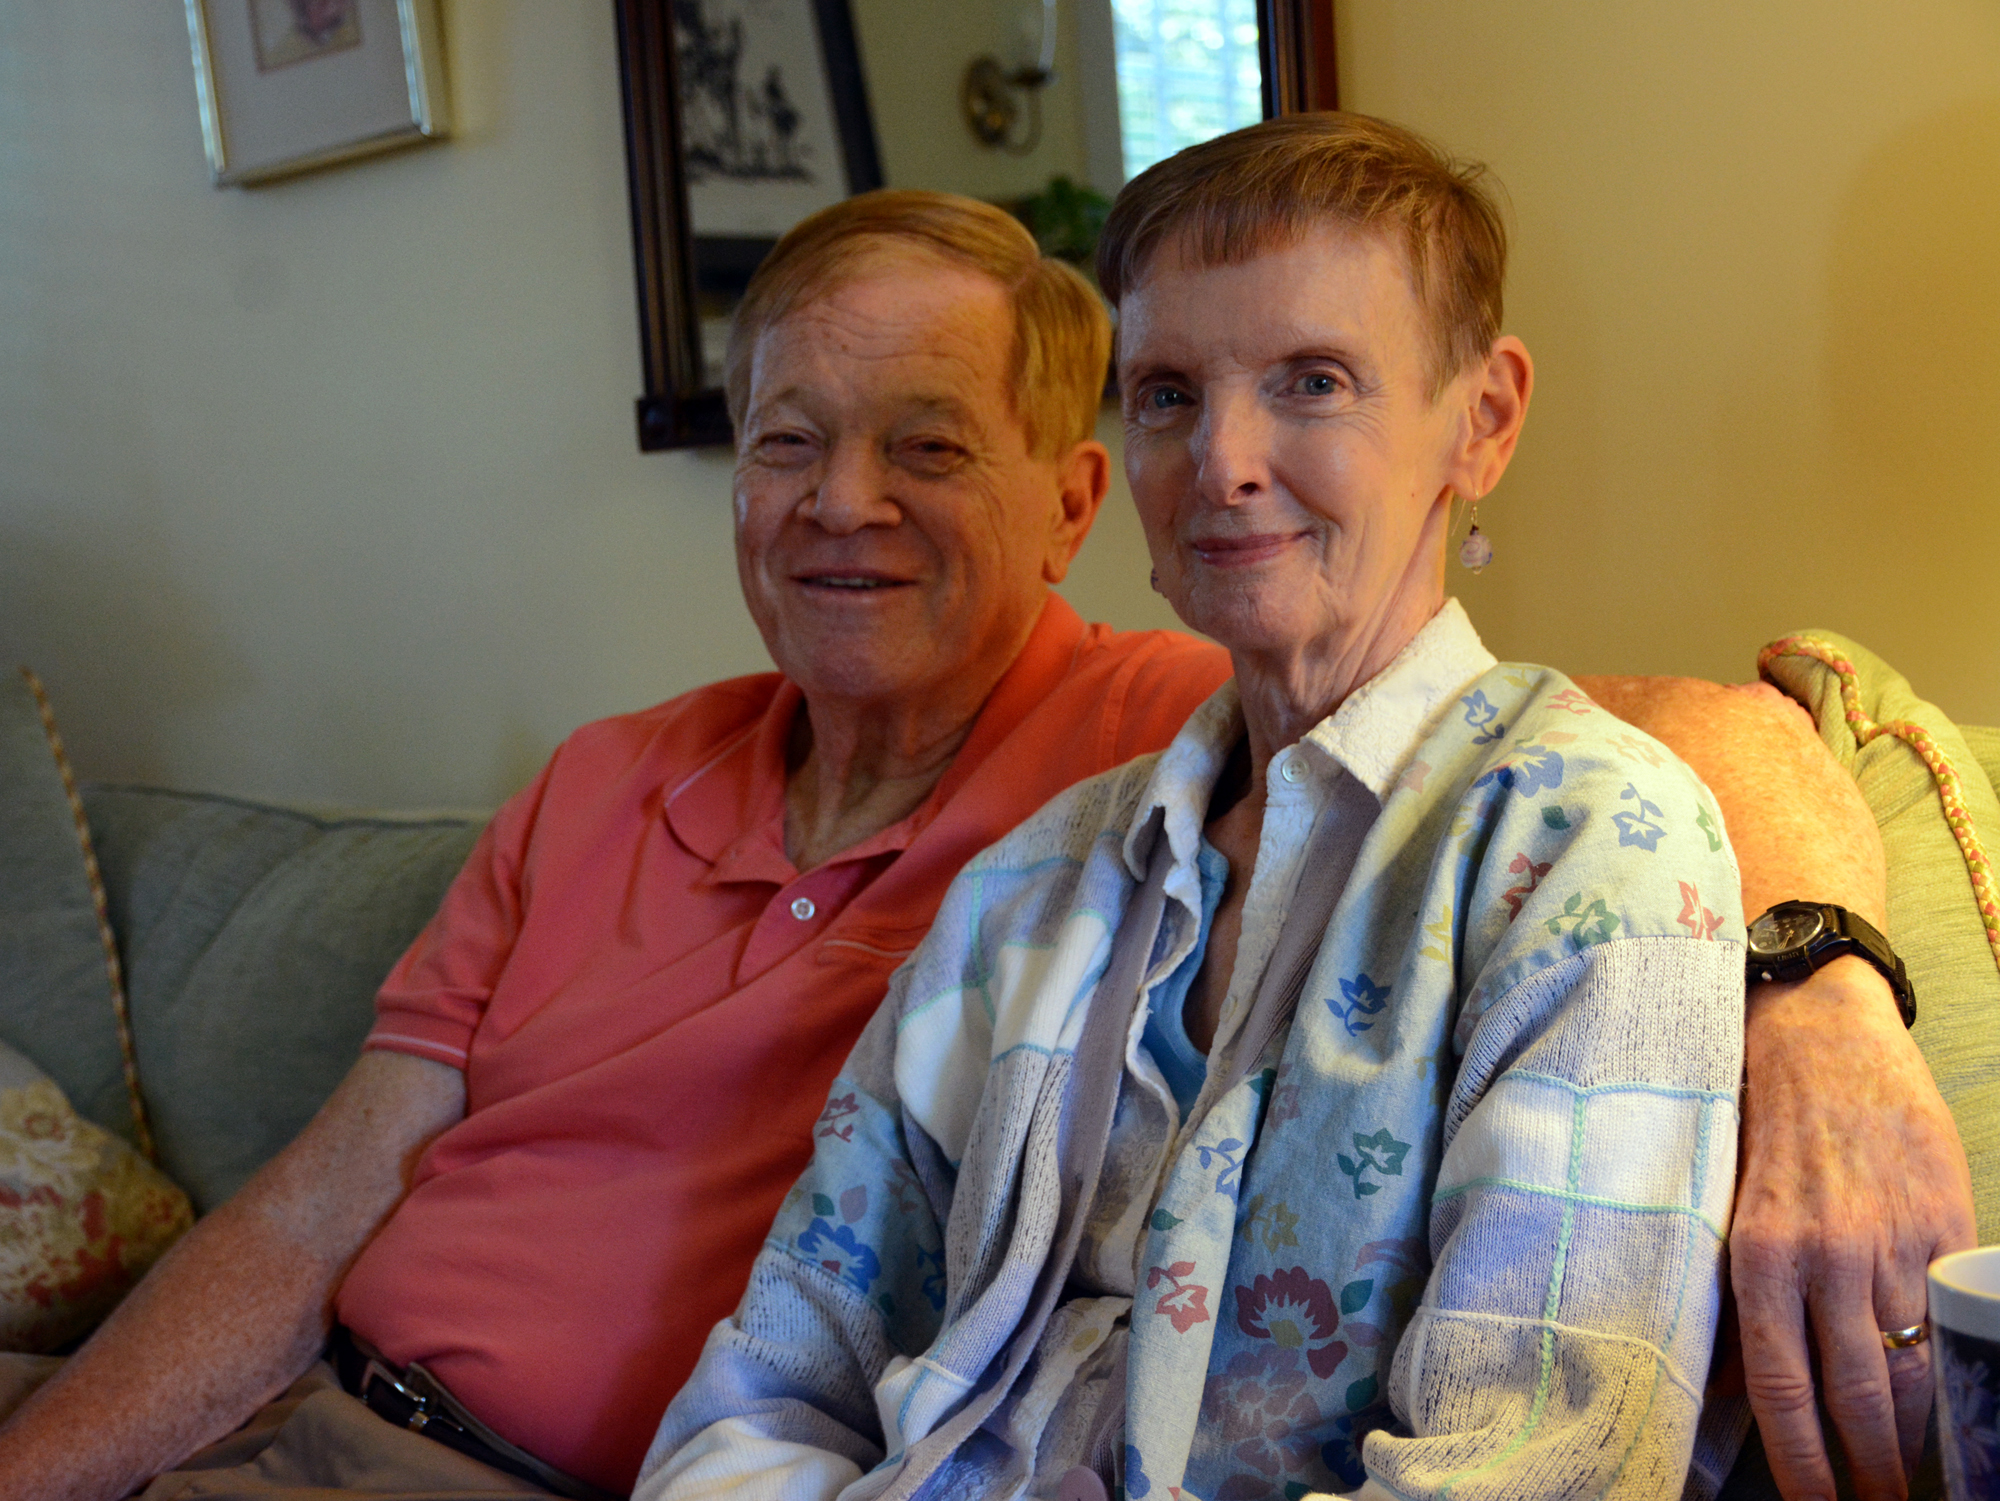 Curiosity, Commitment Define Couple's Marriage — and Their Philanthropy